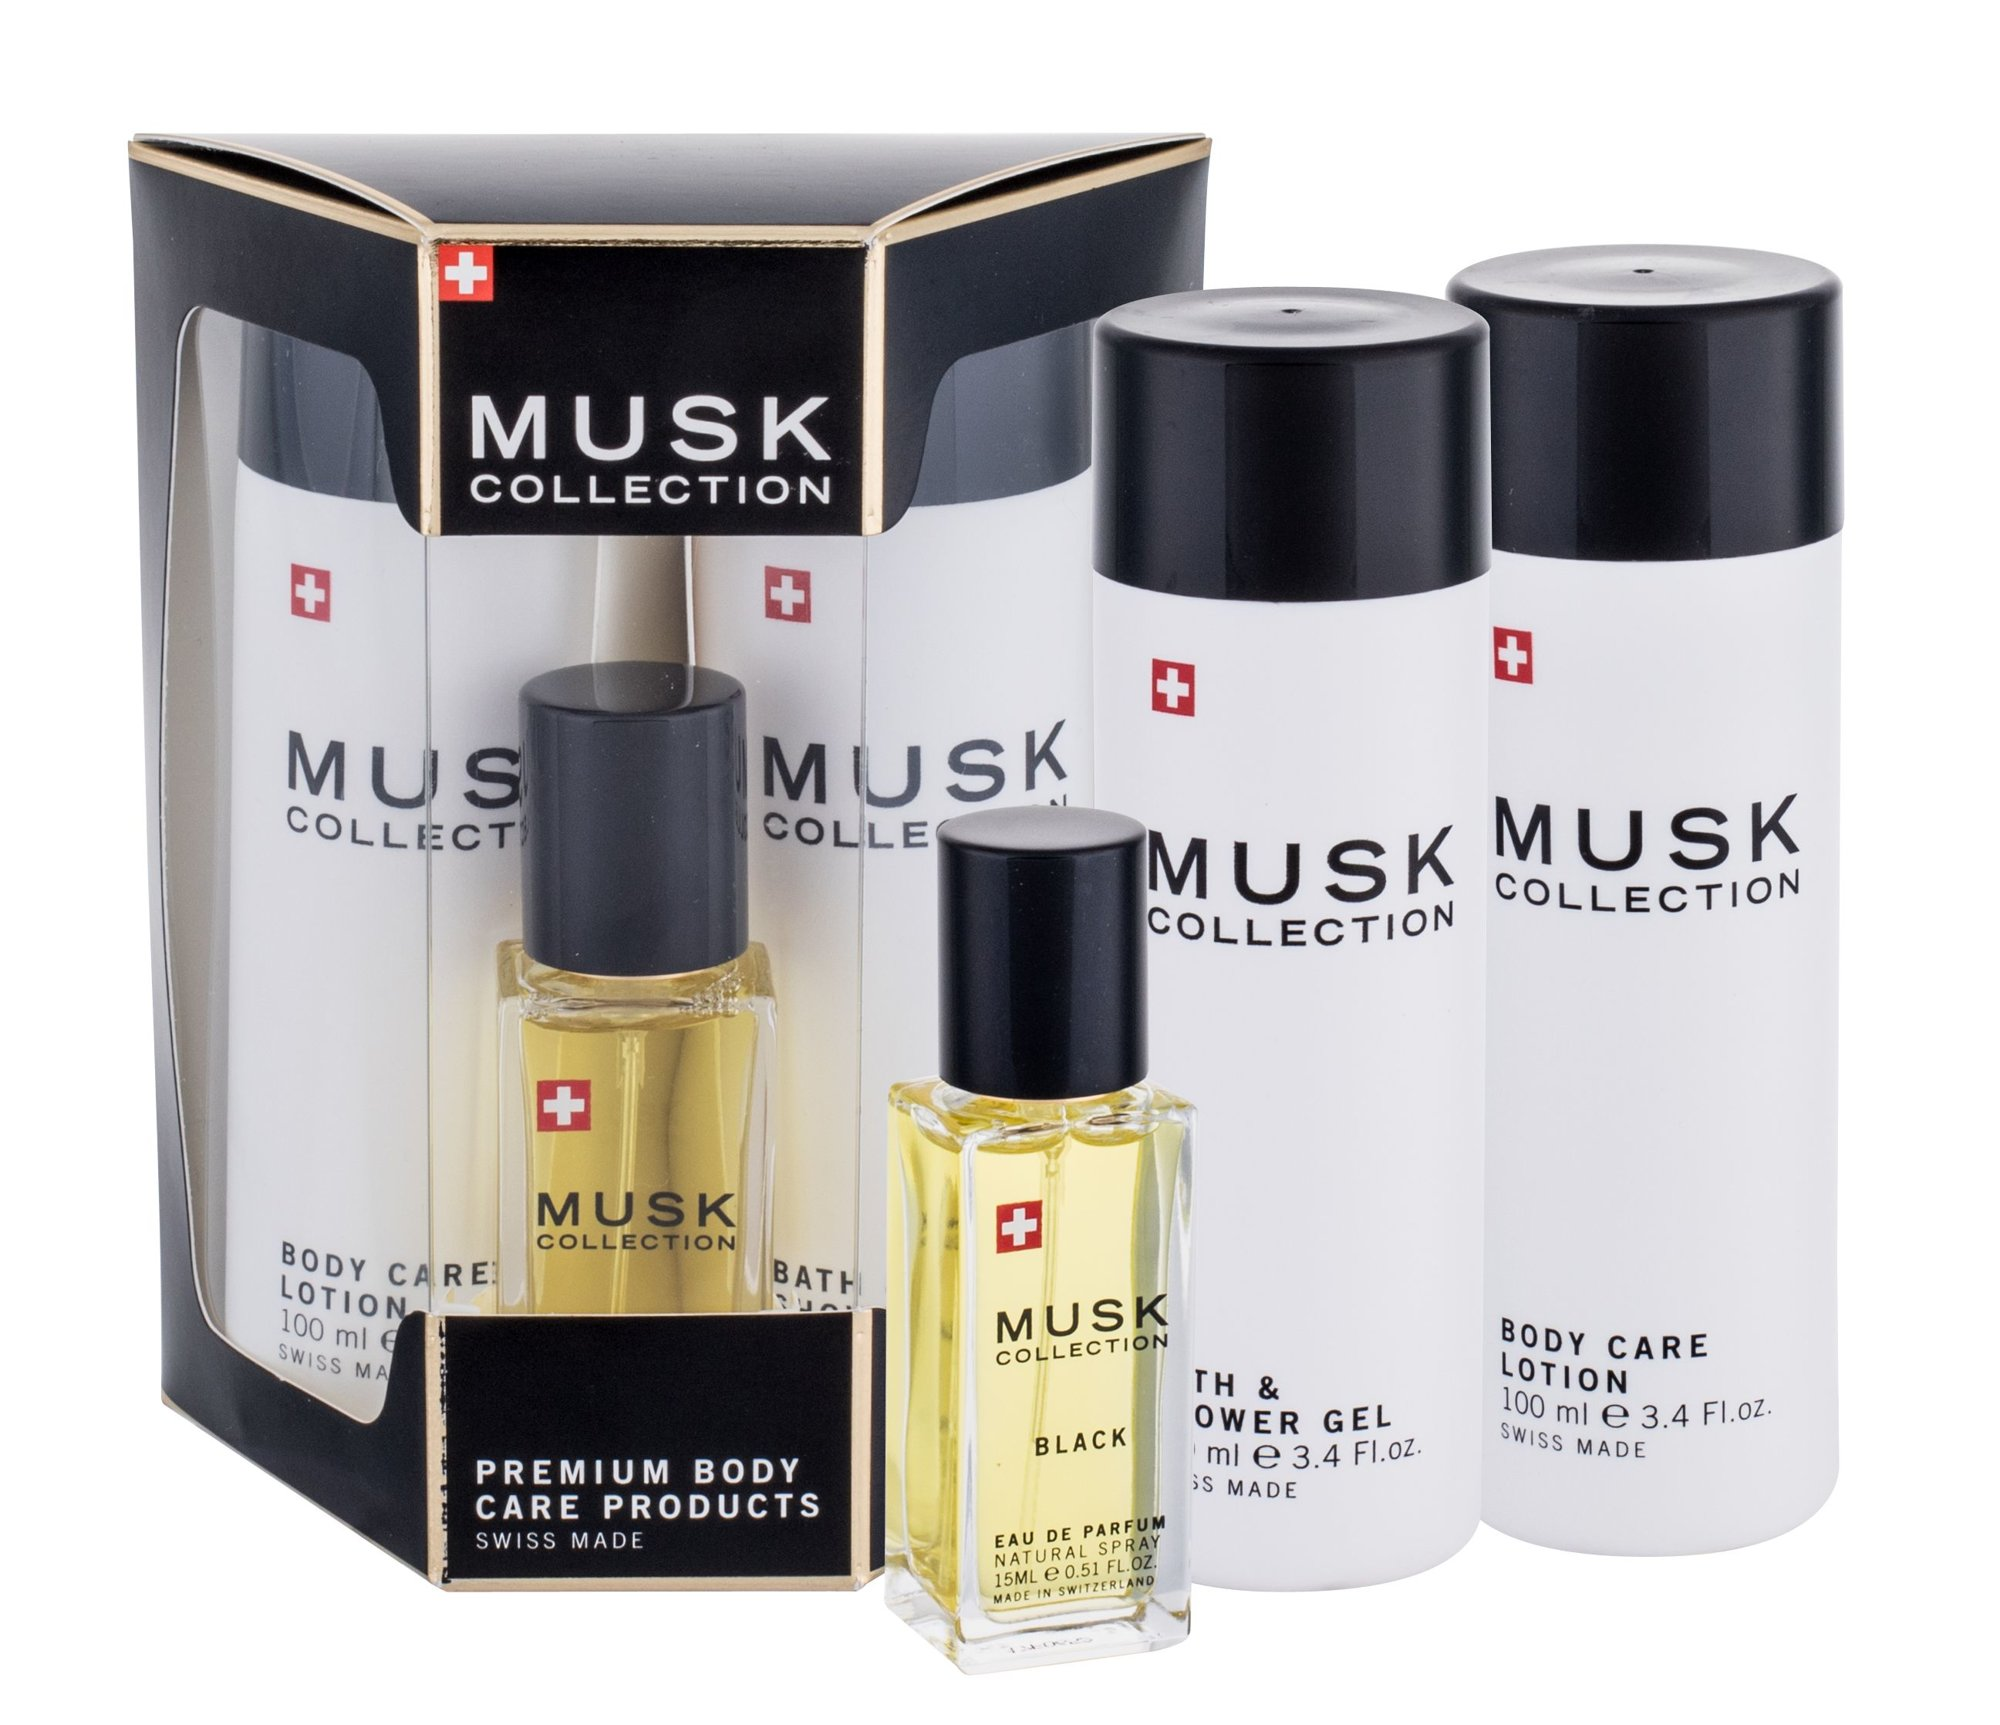 MUSK Collection Musk Collection EDP 15ml